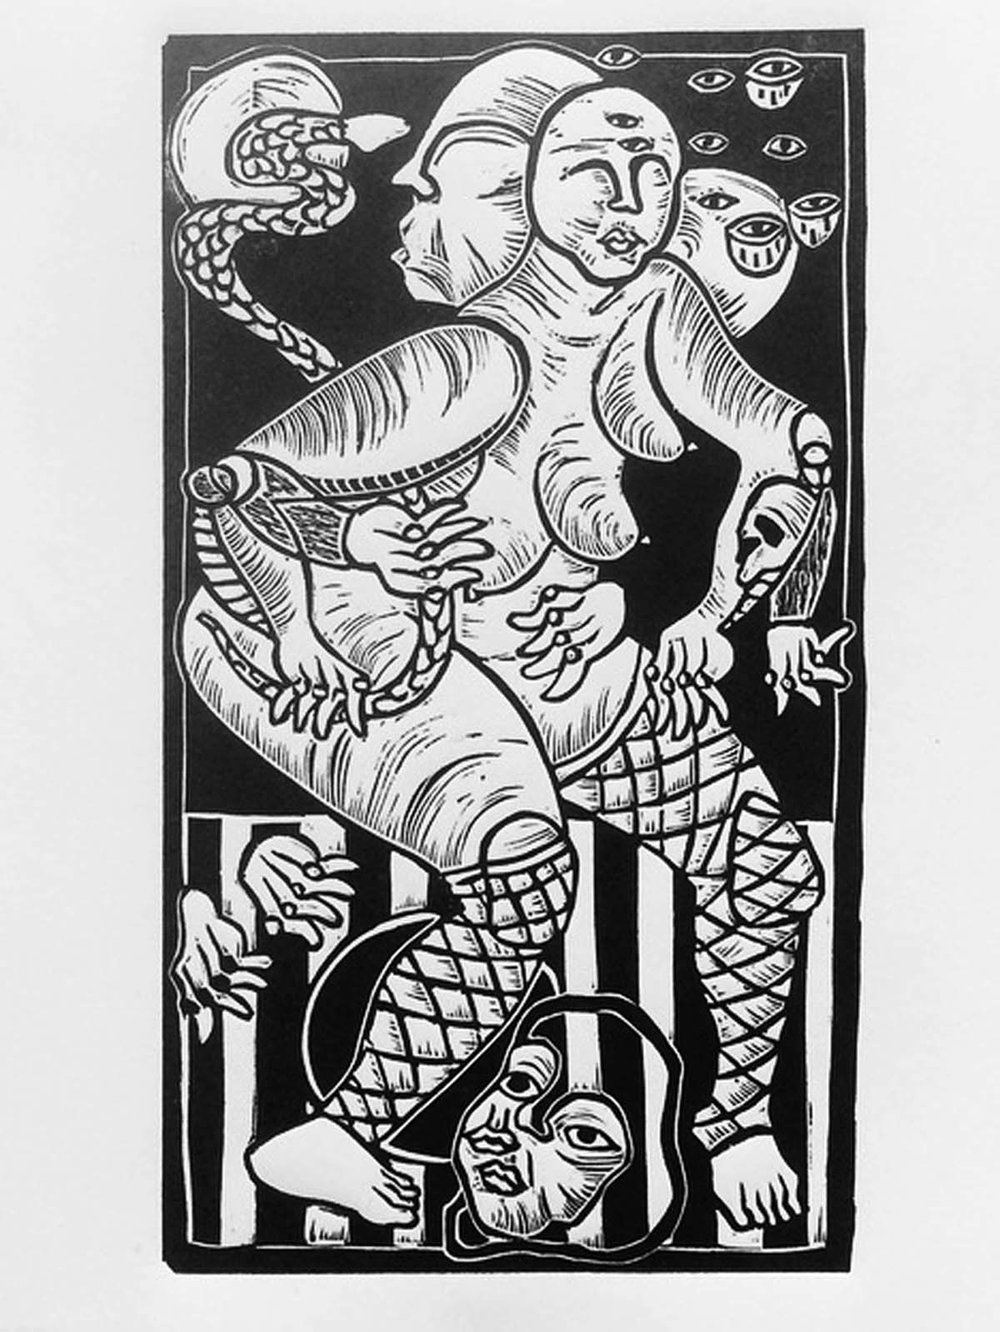 Ashley Gattis Embraceable (edition of 3) relief print 6 x 9.5 inches AGA 001G.jpg